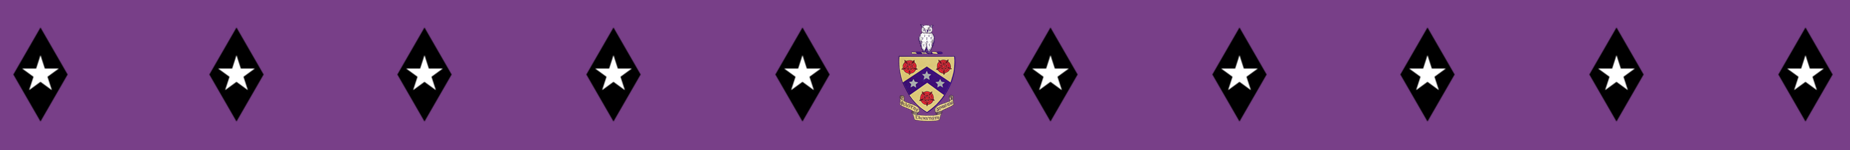 Coat of arms and dimonds banner.png